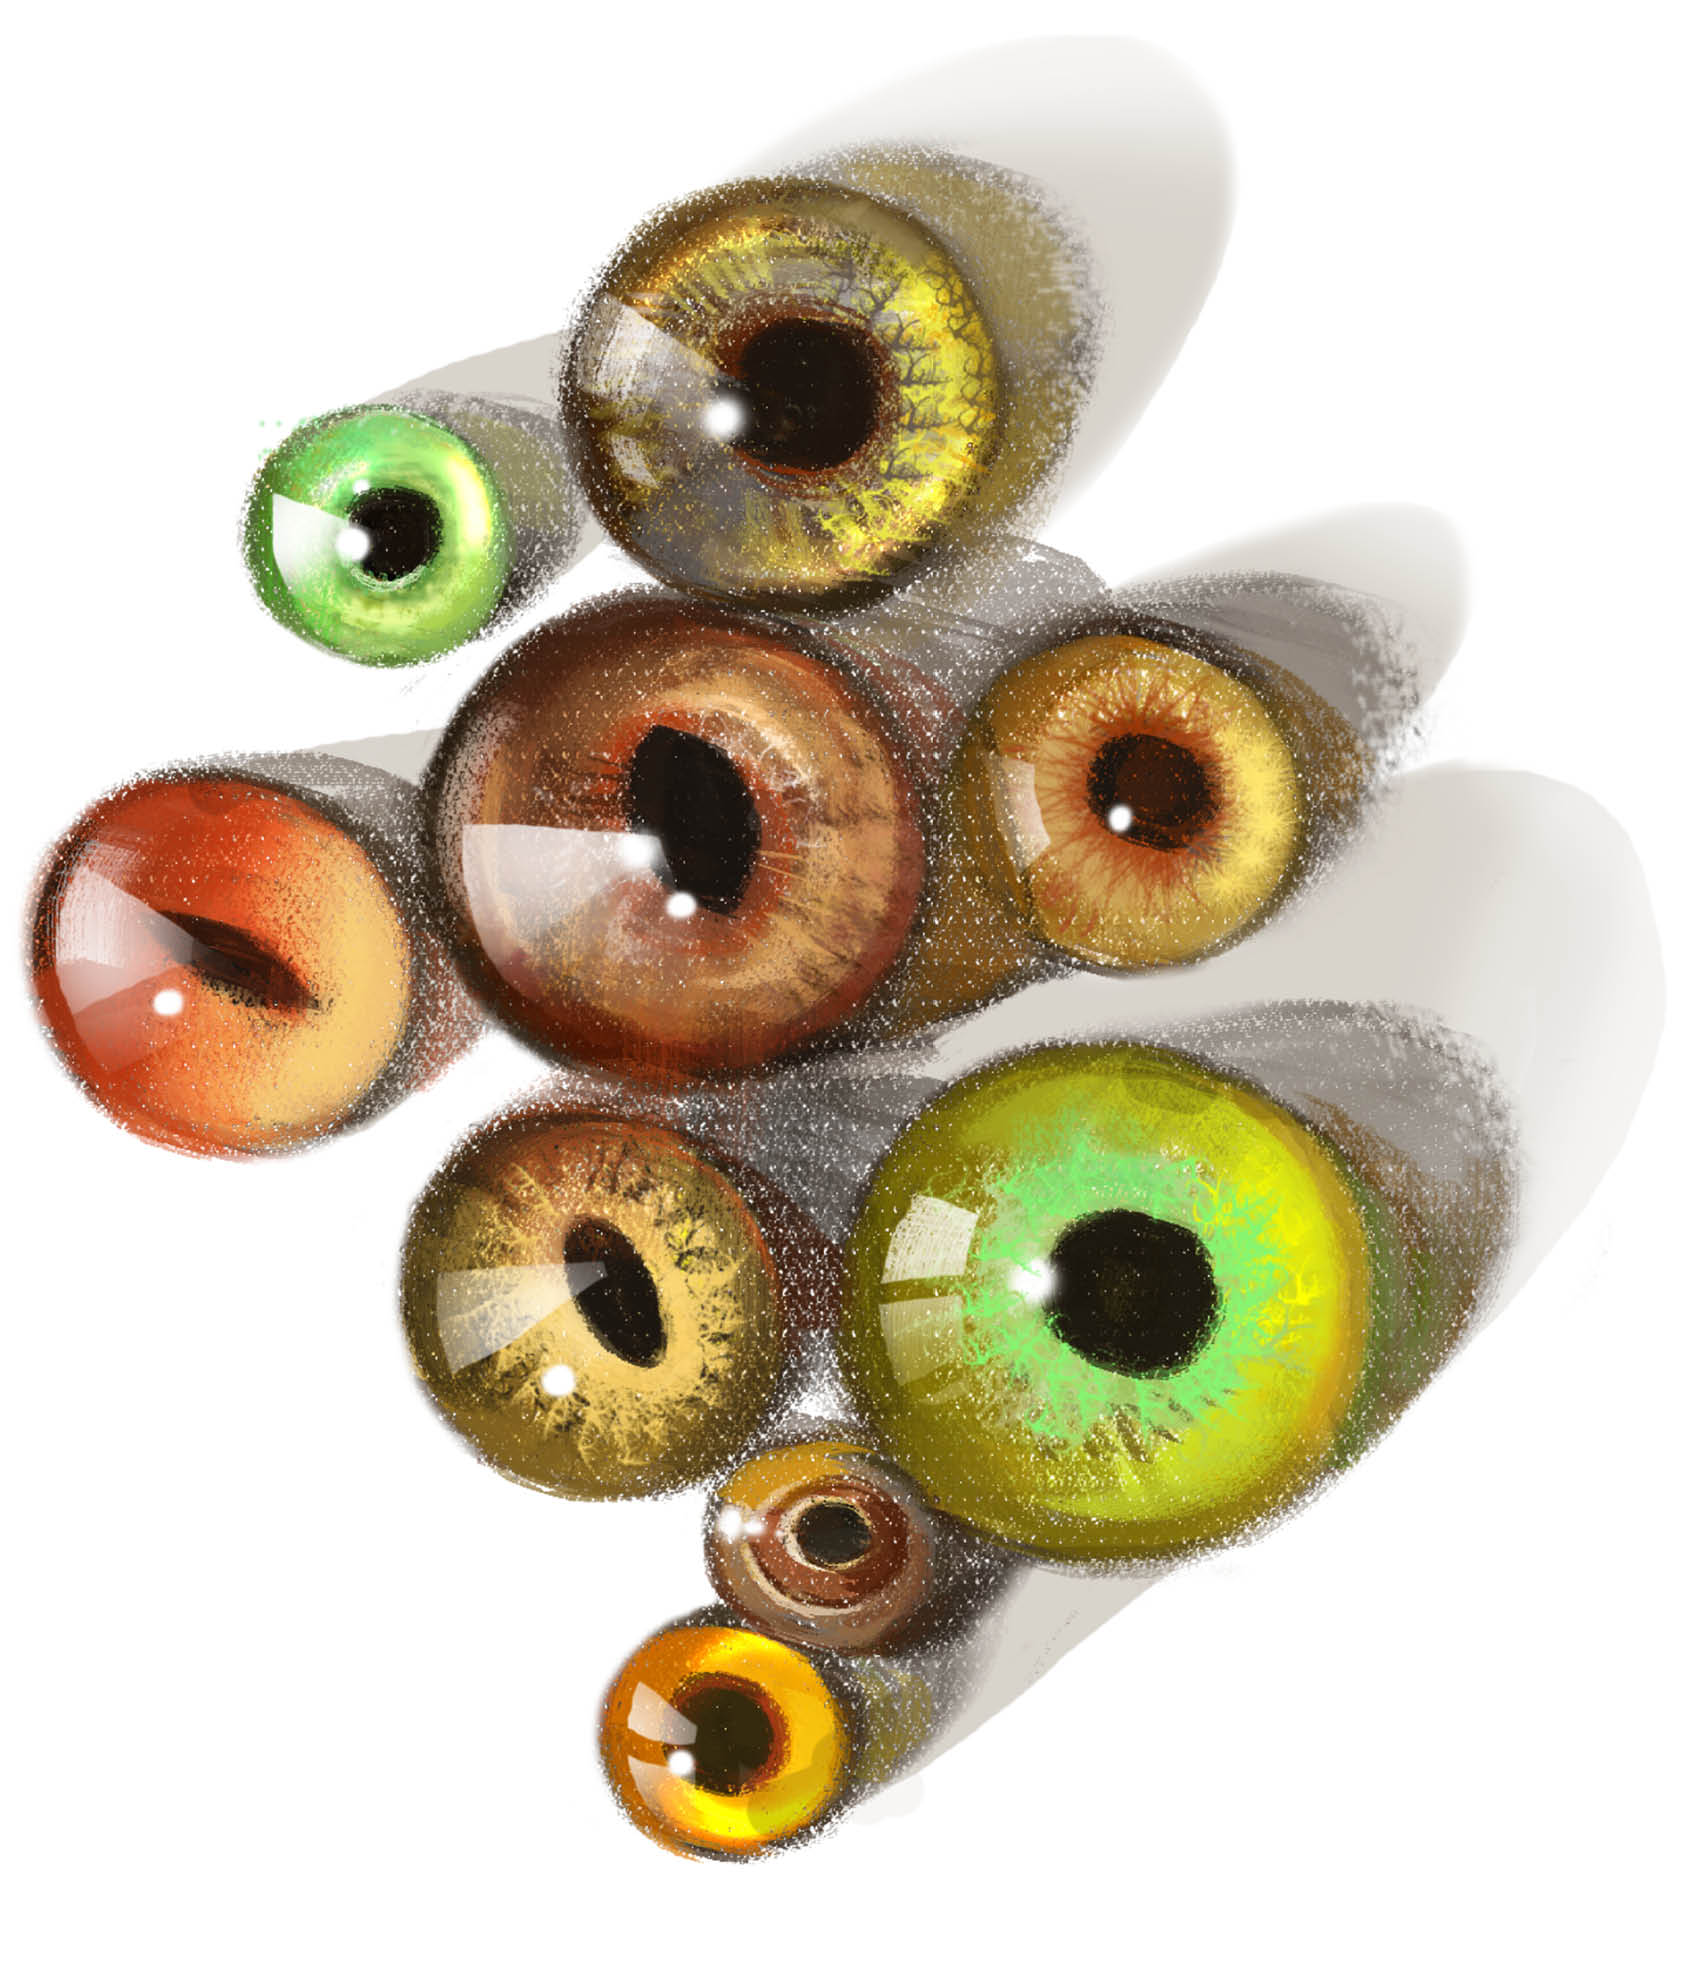 Tohickon Glass Eyes produces anything from deer eyes to bird, fish, and crocodile eyes, in its small Pennsylvania factory.